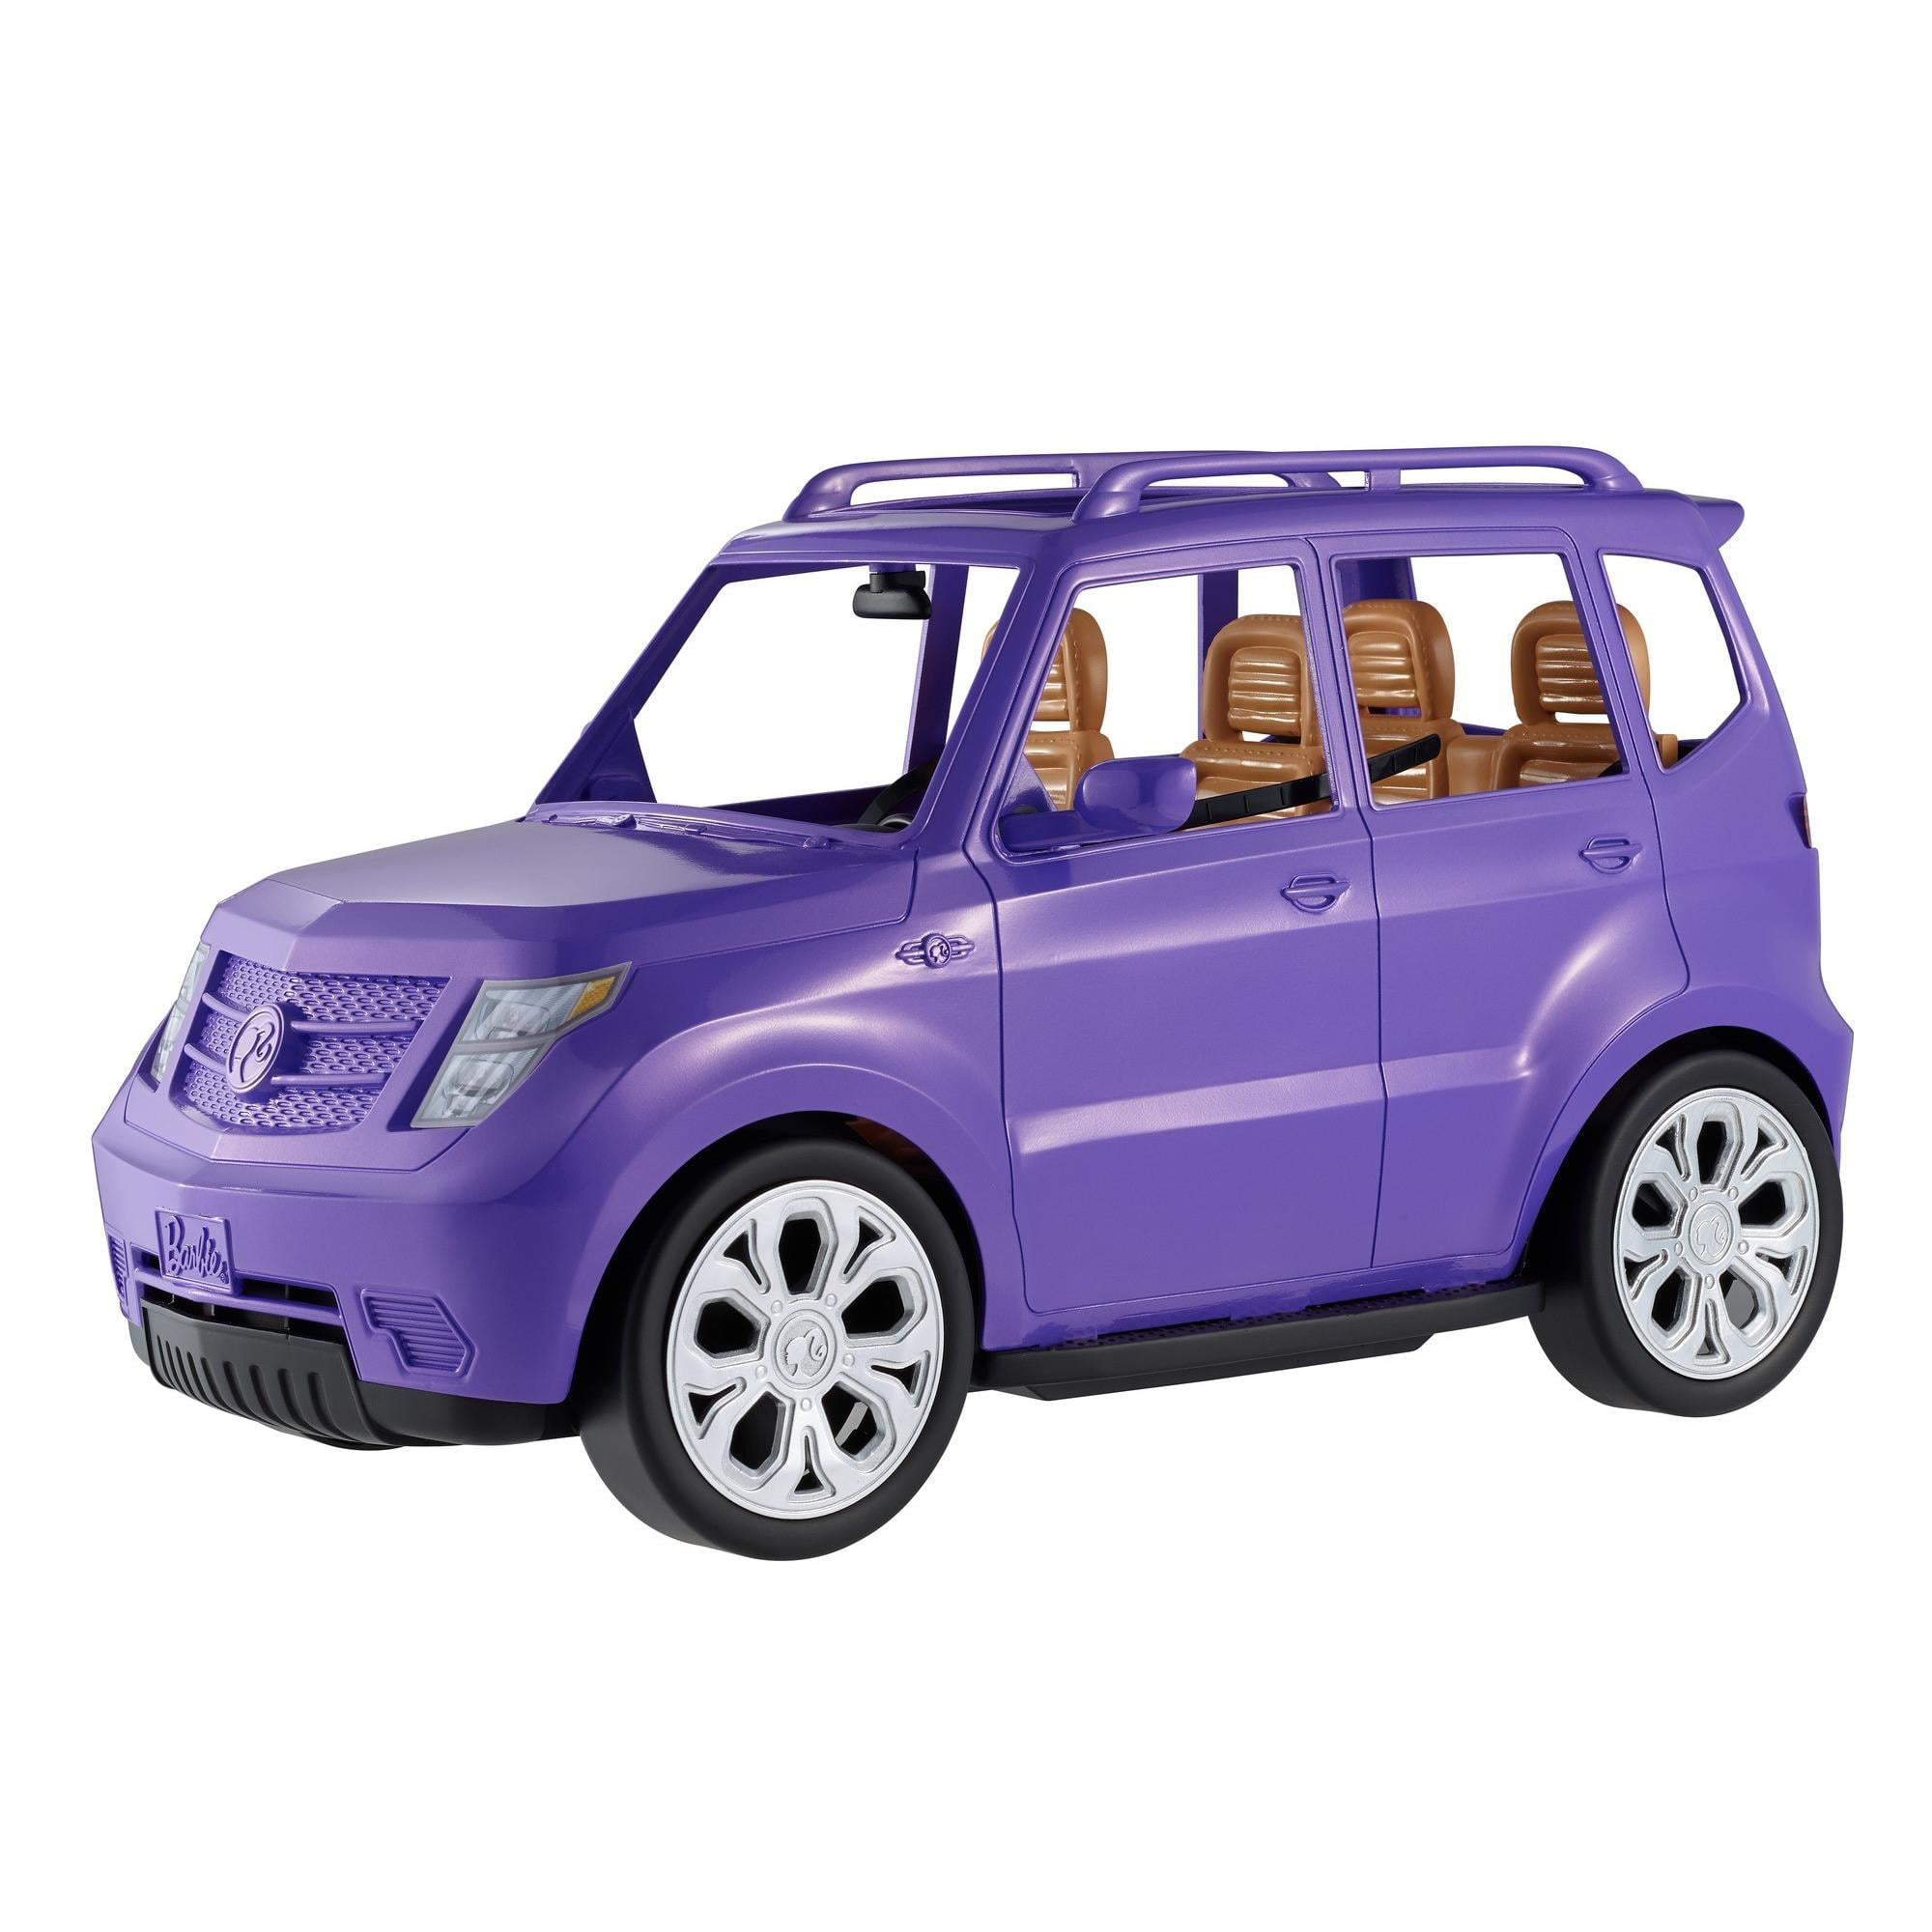 Barbie Glam SUV Purple Fun Adventure Barbie Vehicle by MATTEL INC.